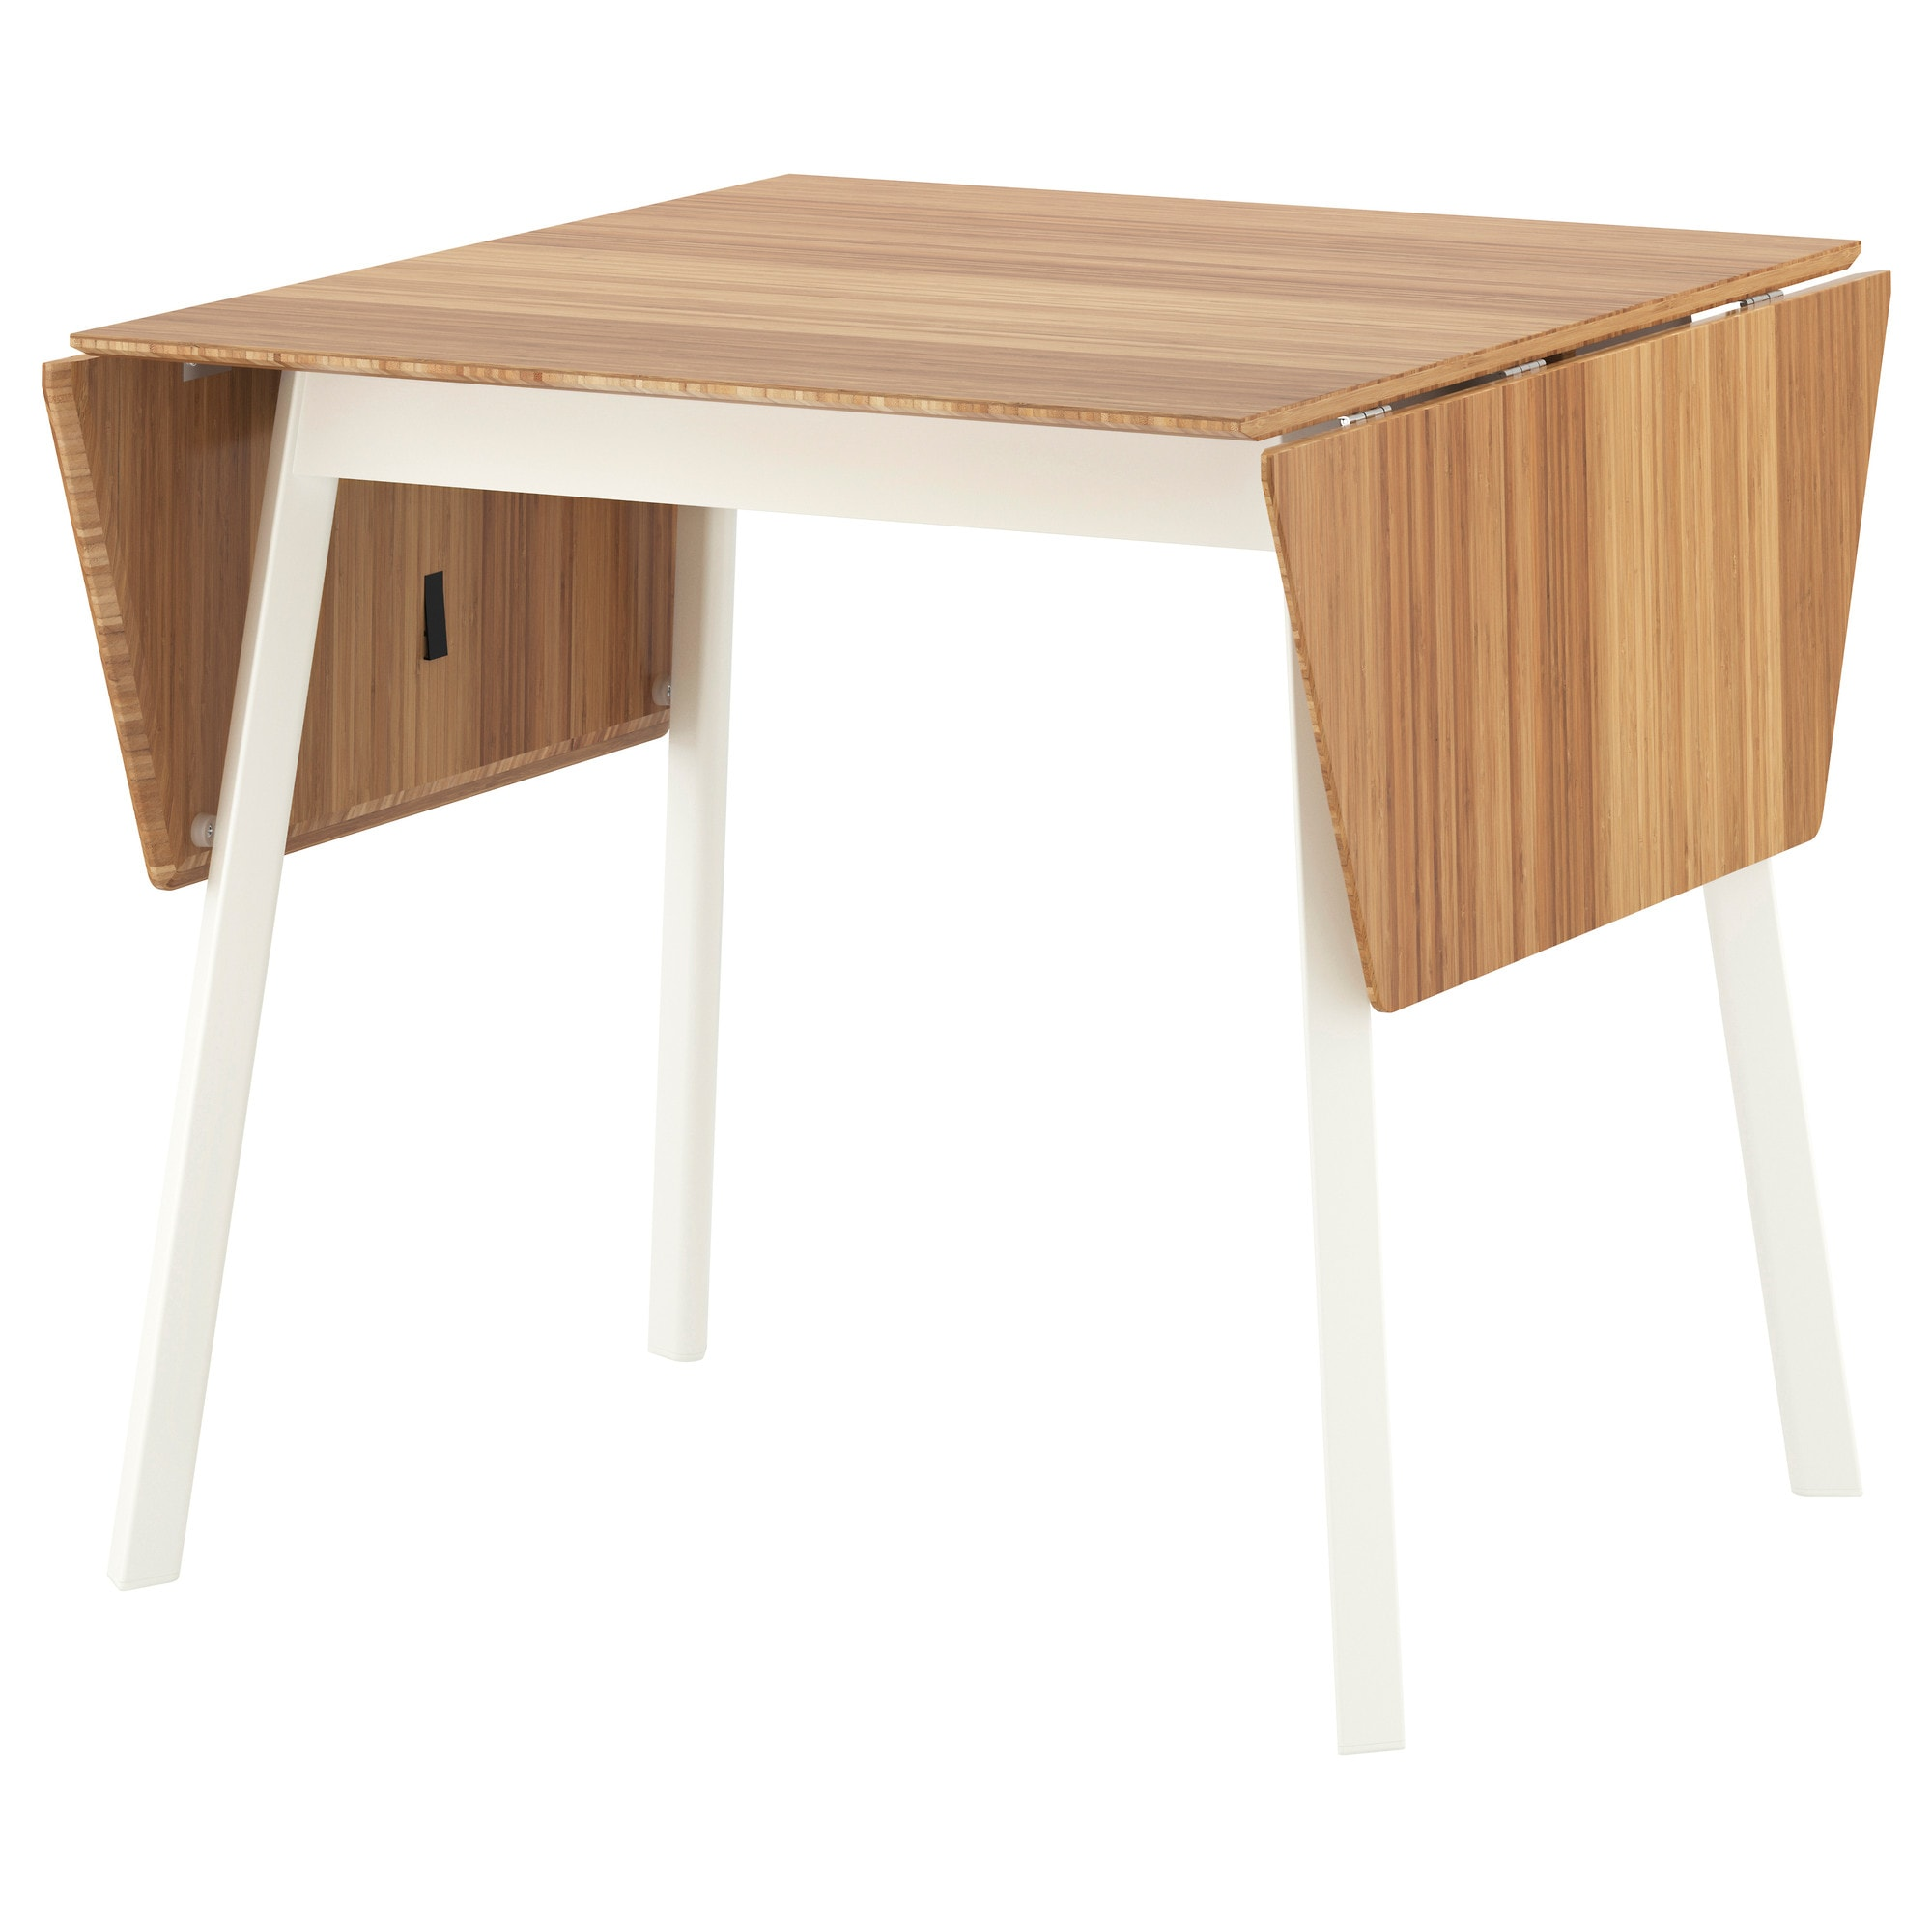 Awesome Ikea Kitchen Tables Gallery Aamedallionsus